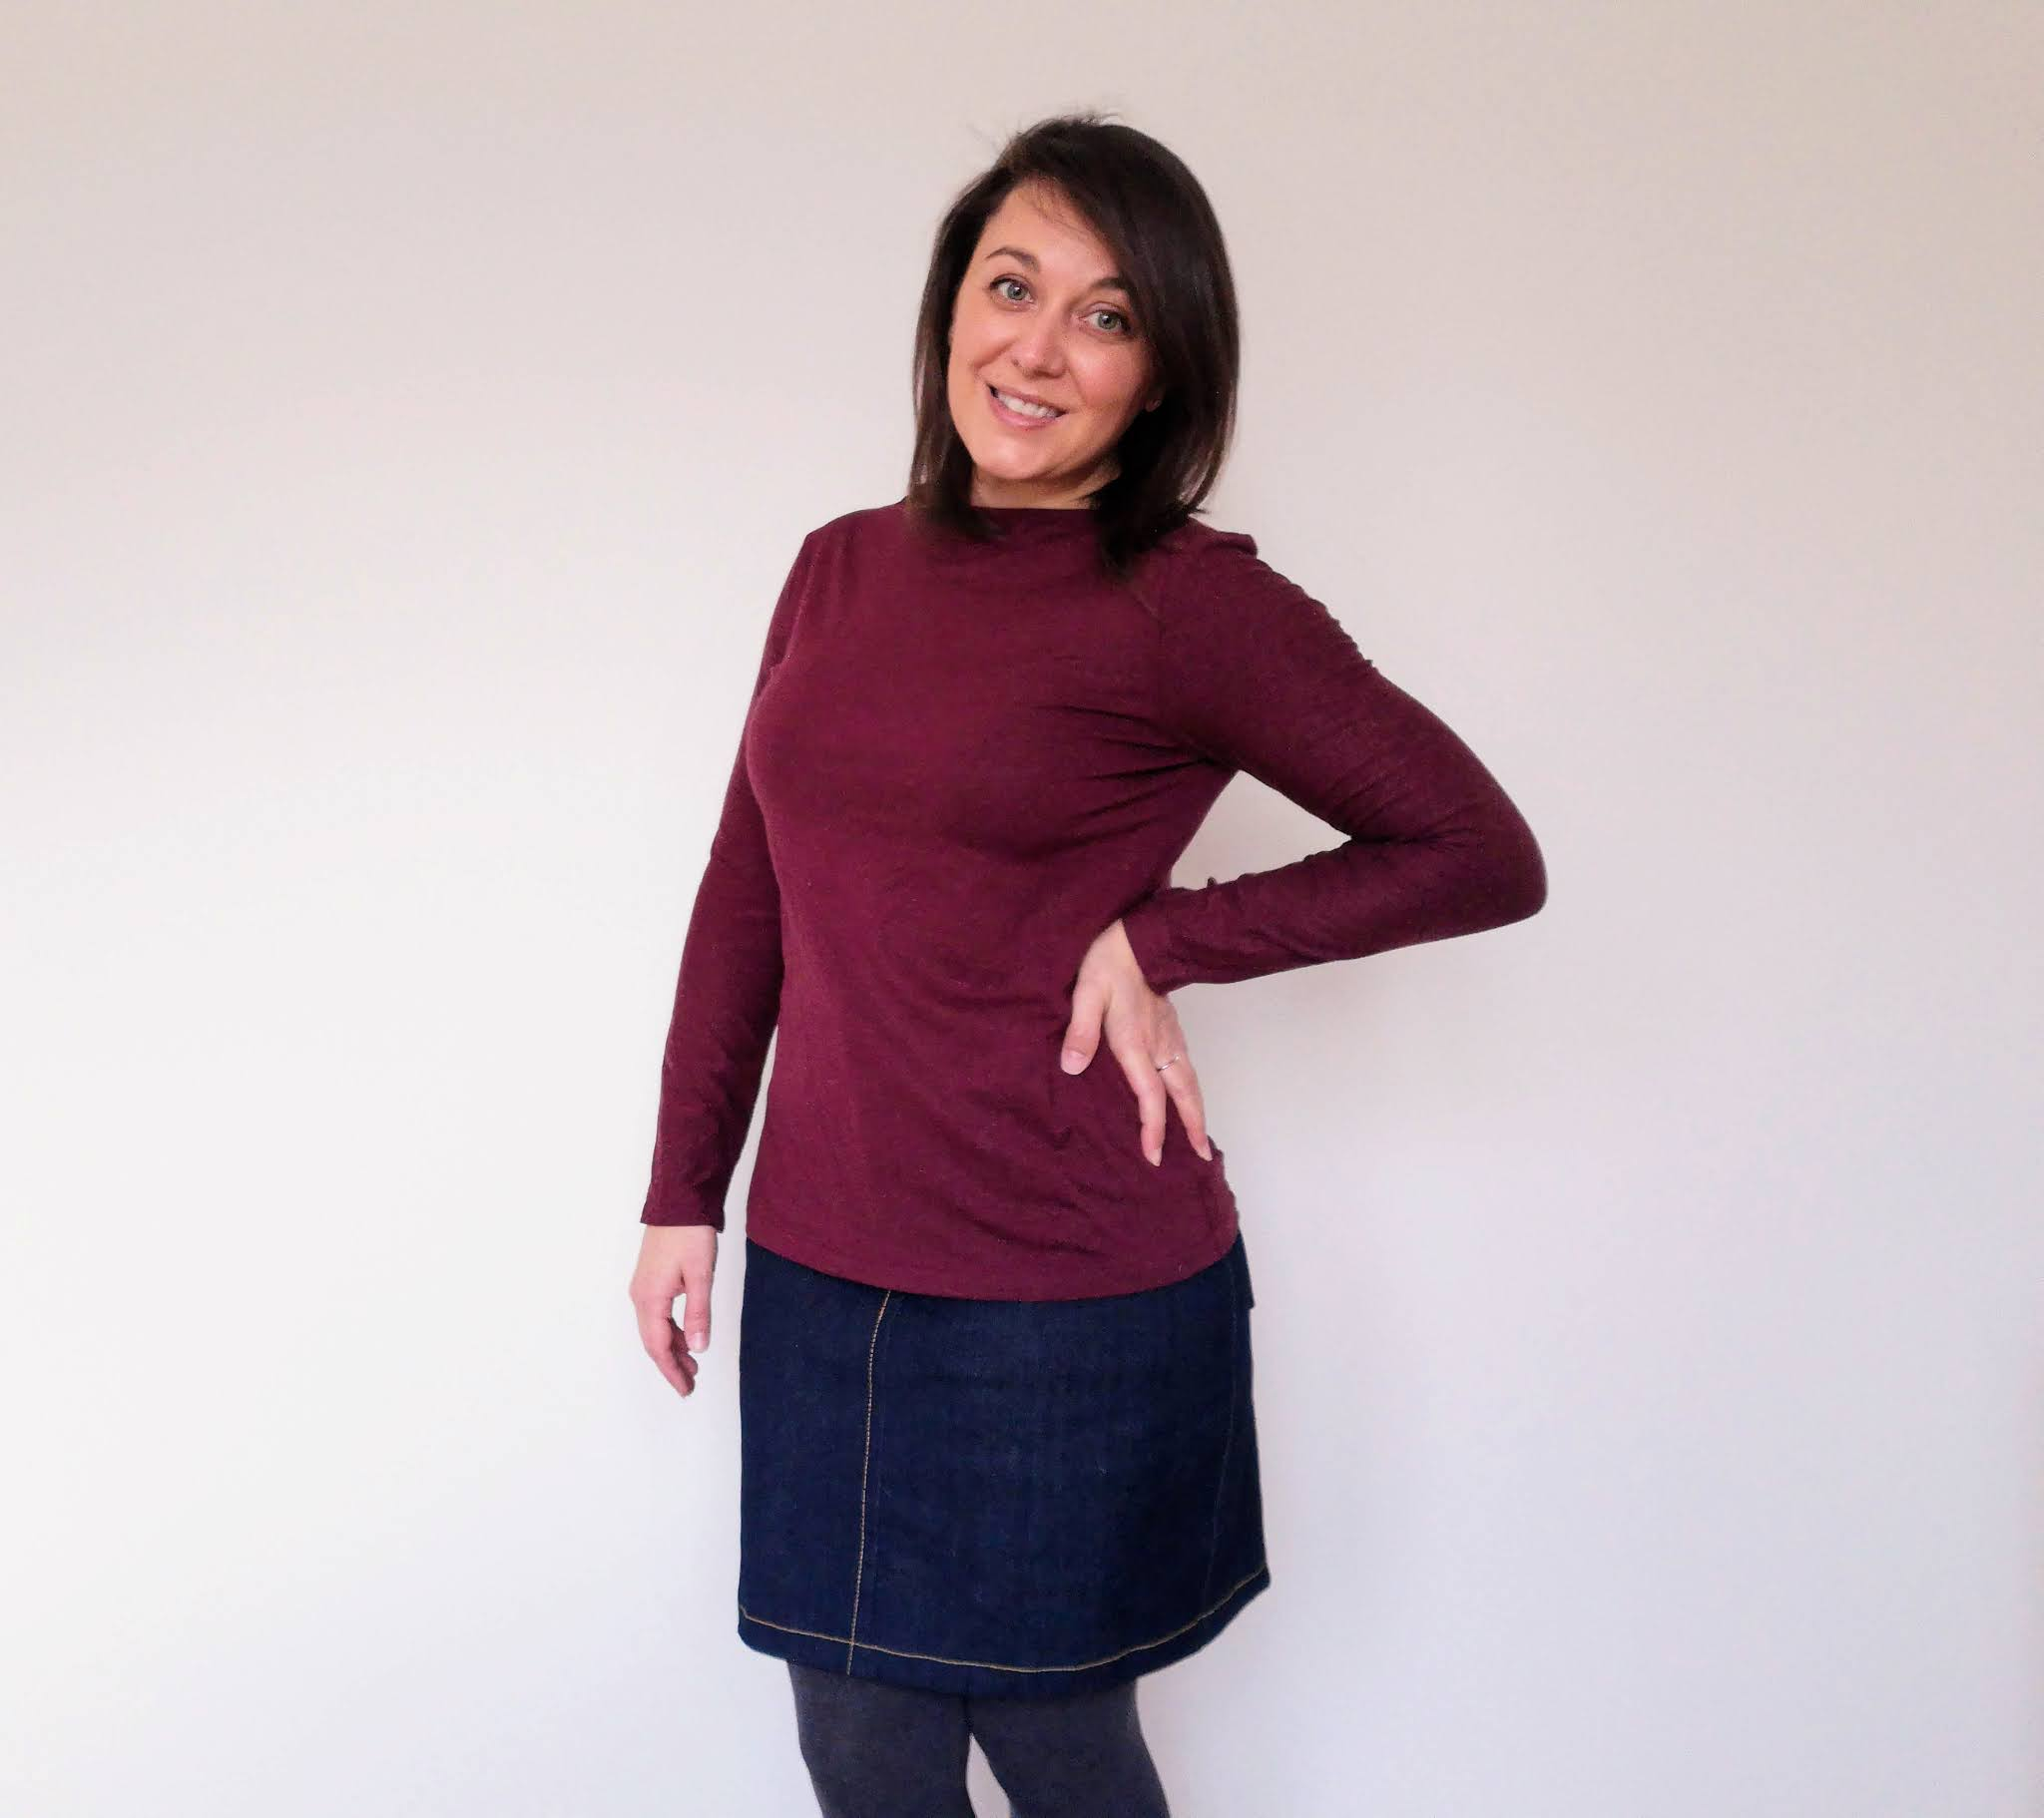 Tilly and the Buttons Freya sweater pattern review